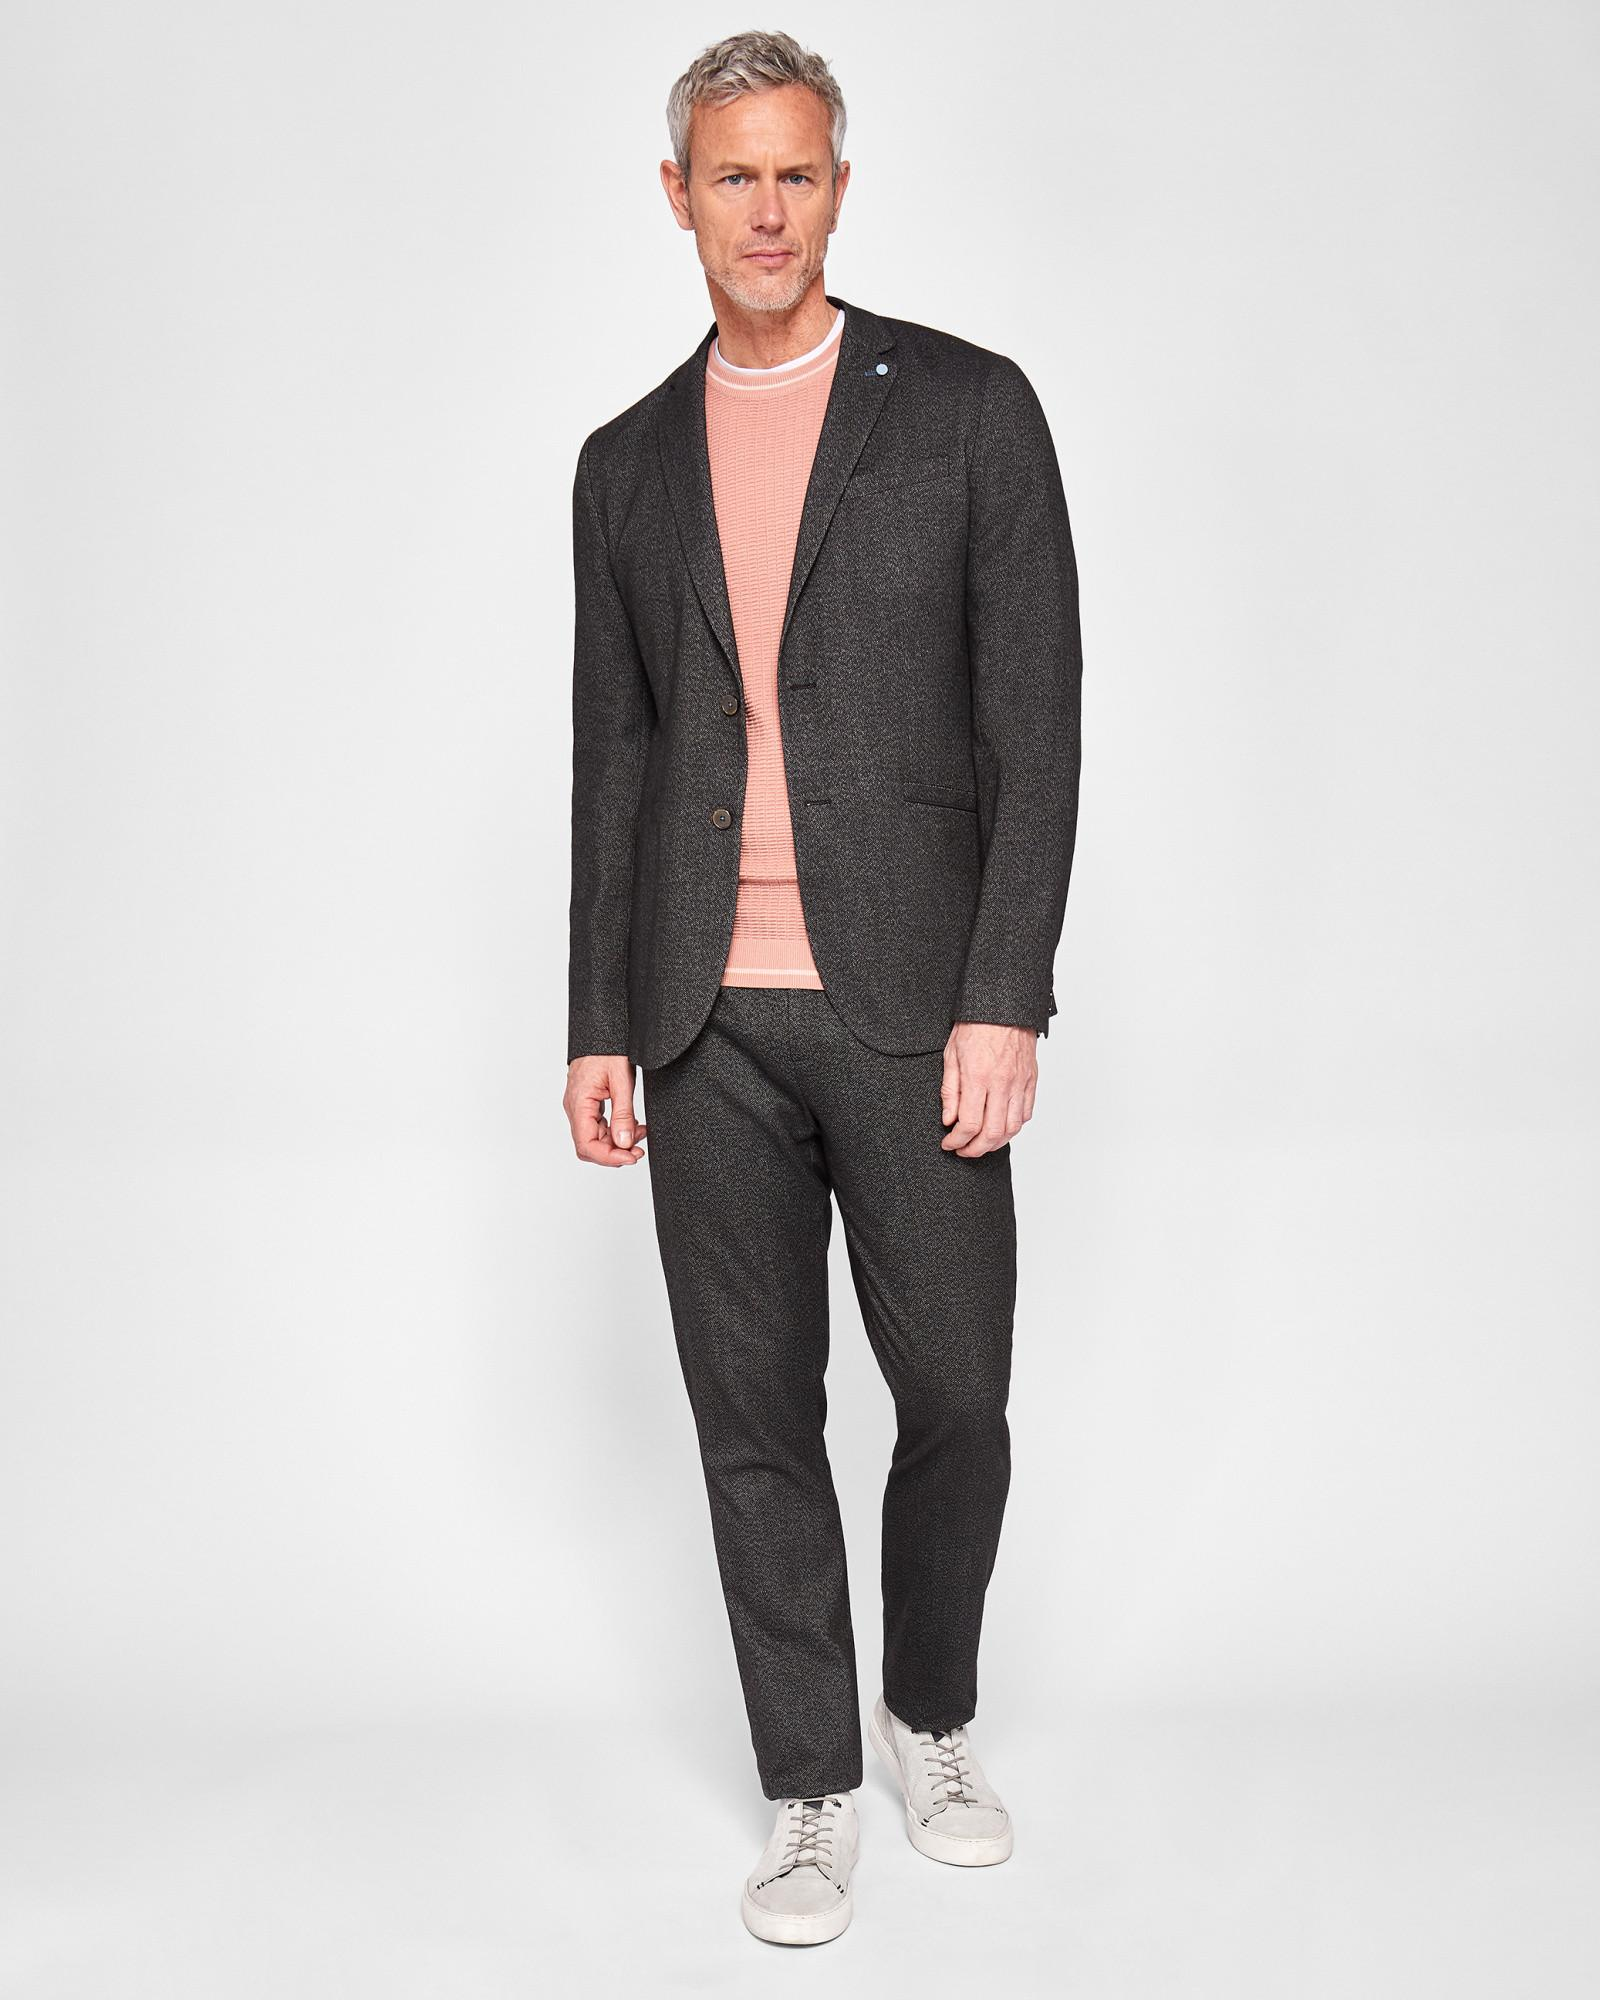 9e5a1bdc5 Lyst - Ted Baker Tall Semi Plain Jacket in Gray for Men